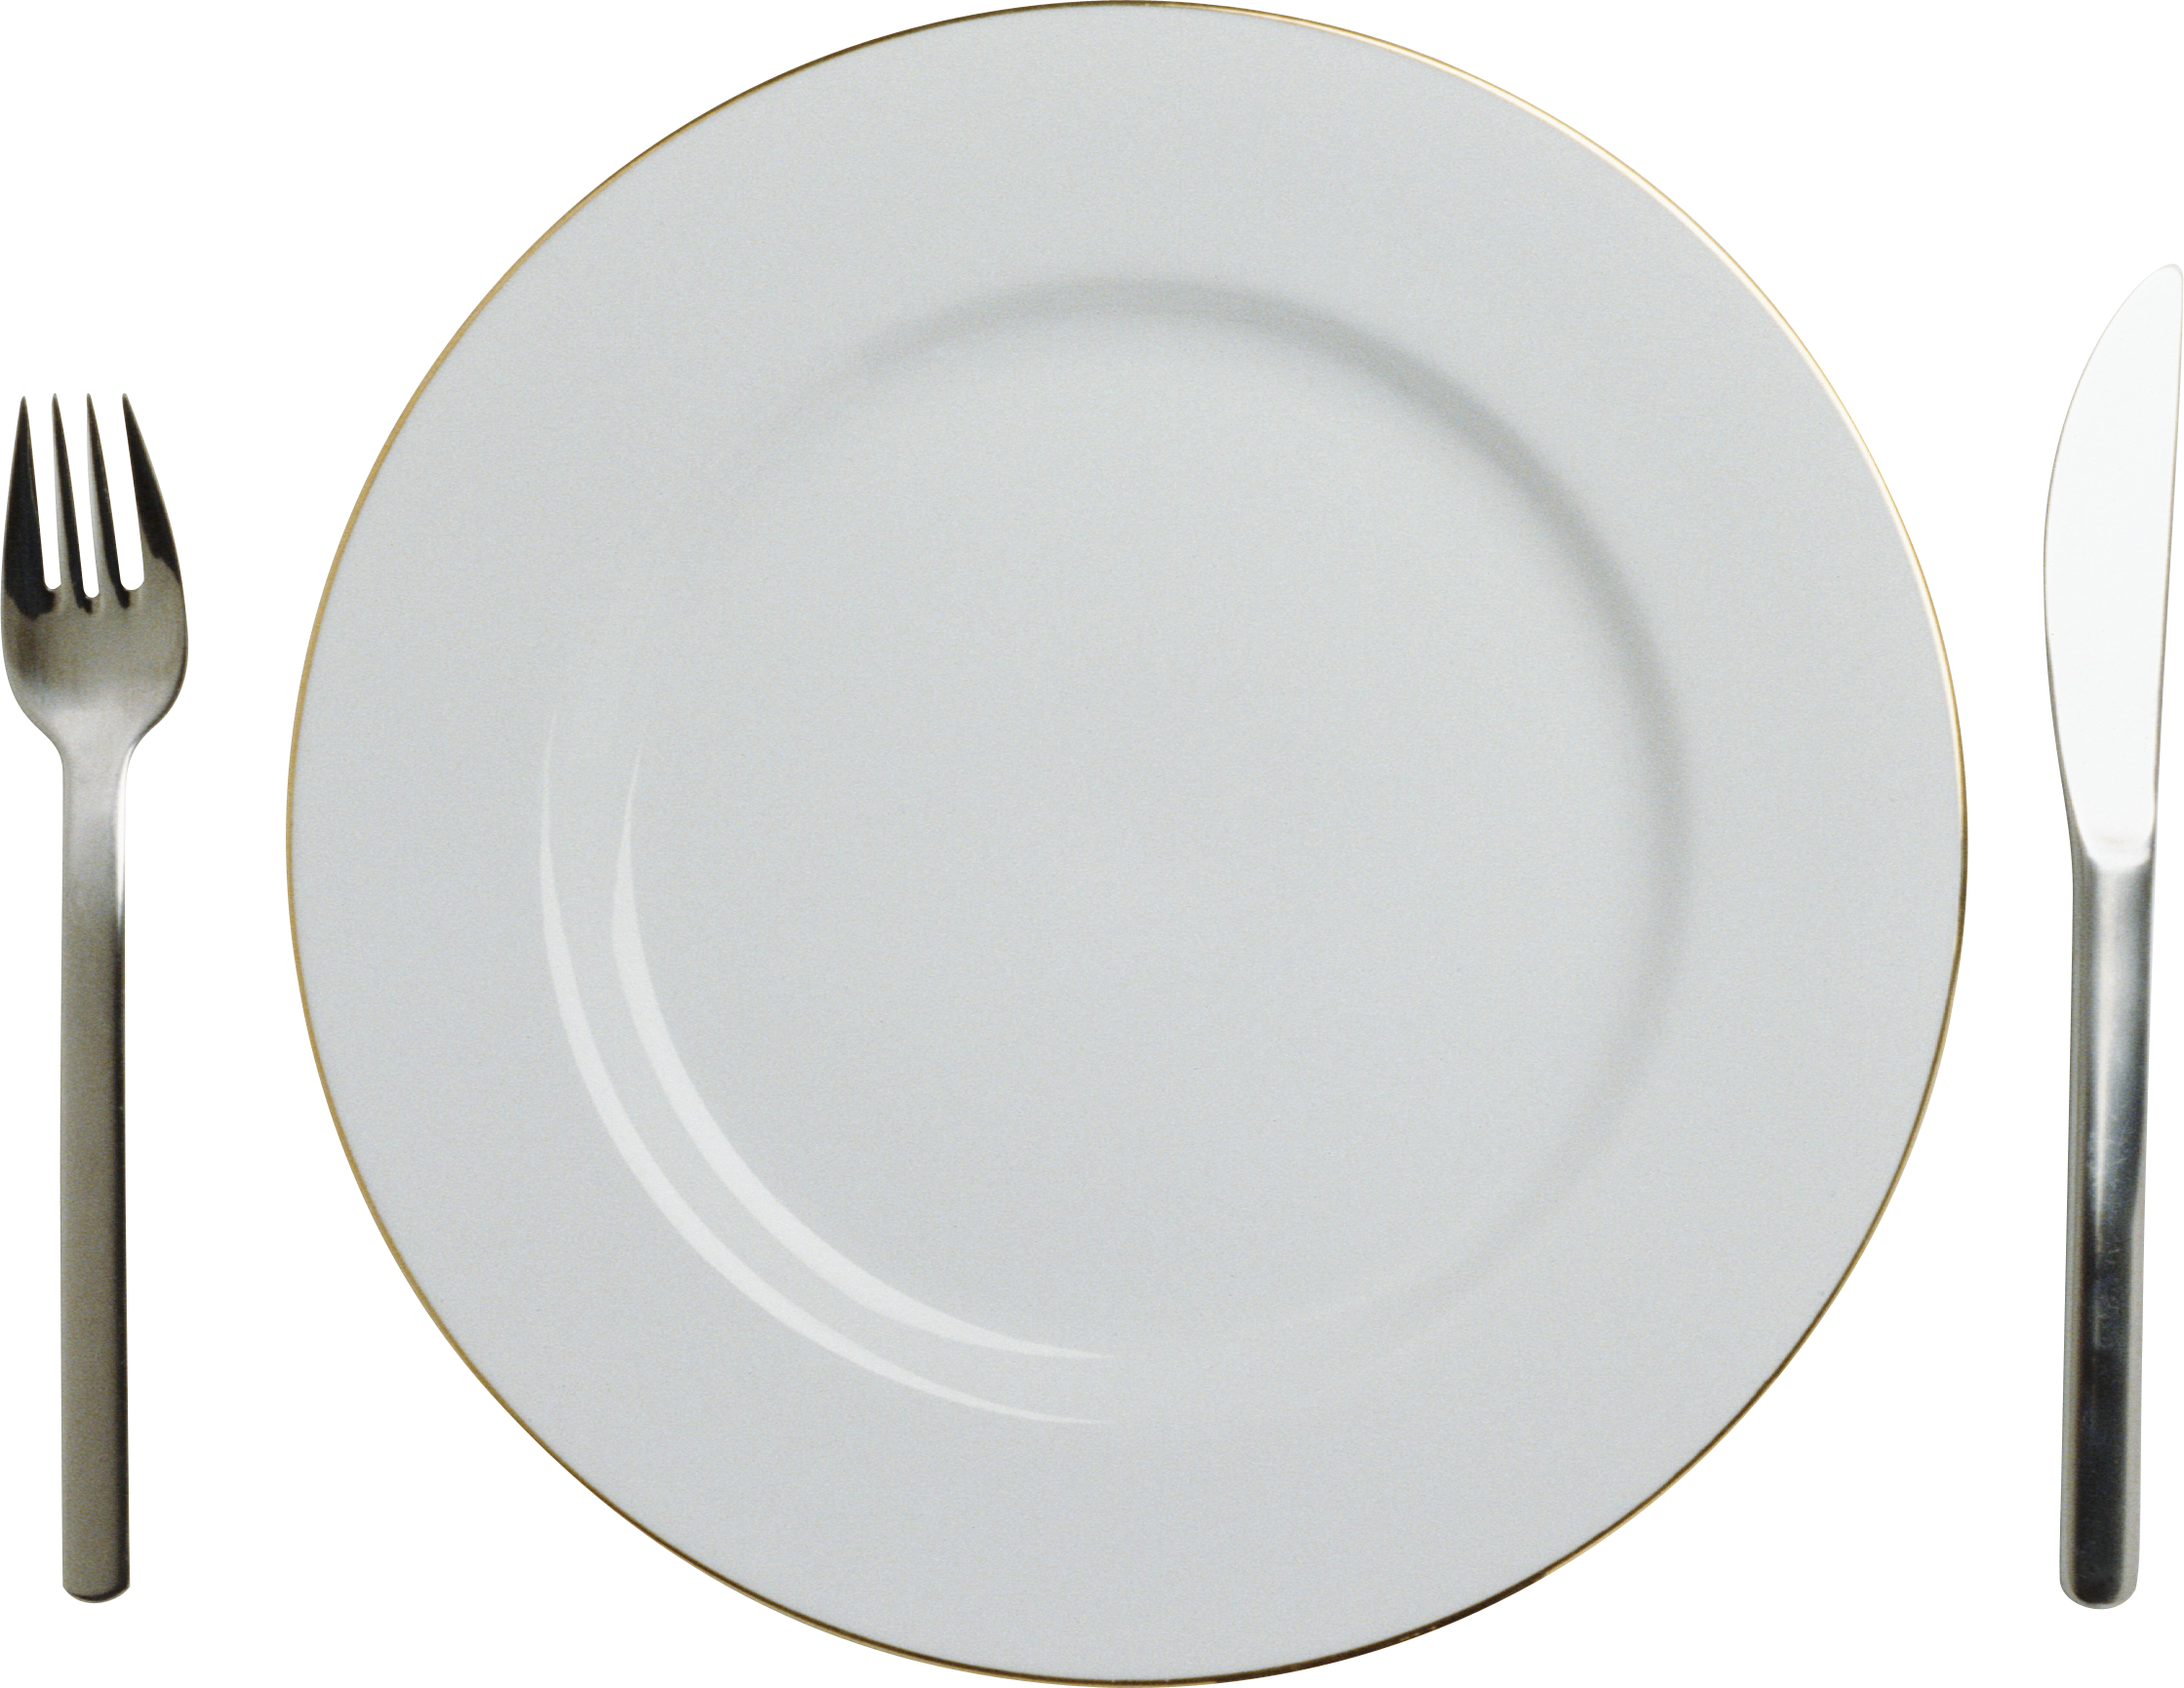 Dinner Plate PNG Transparent Images 9.